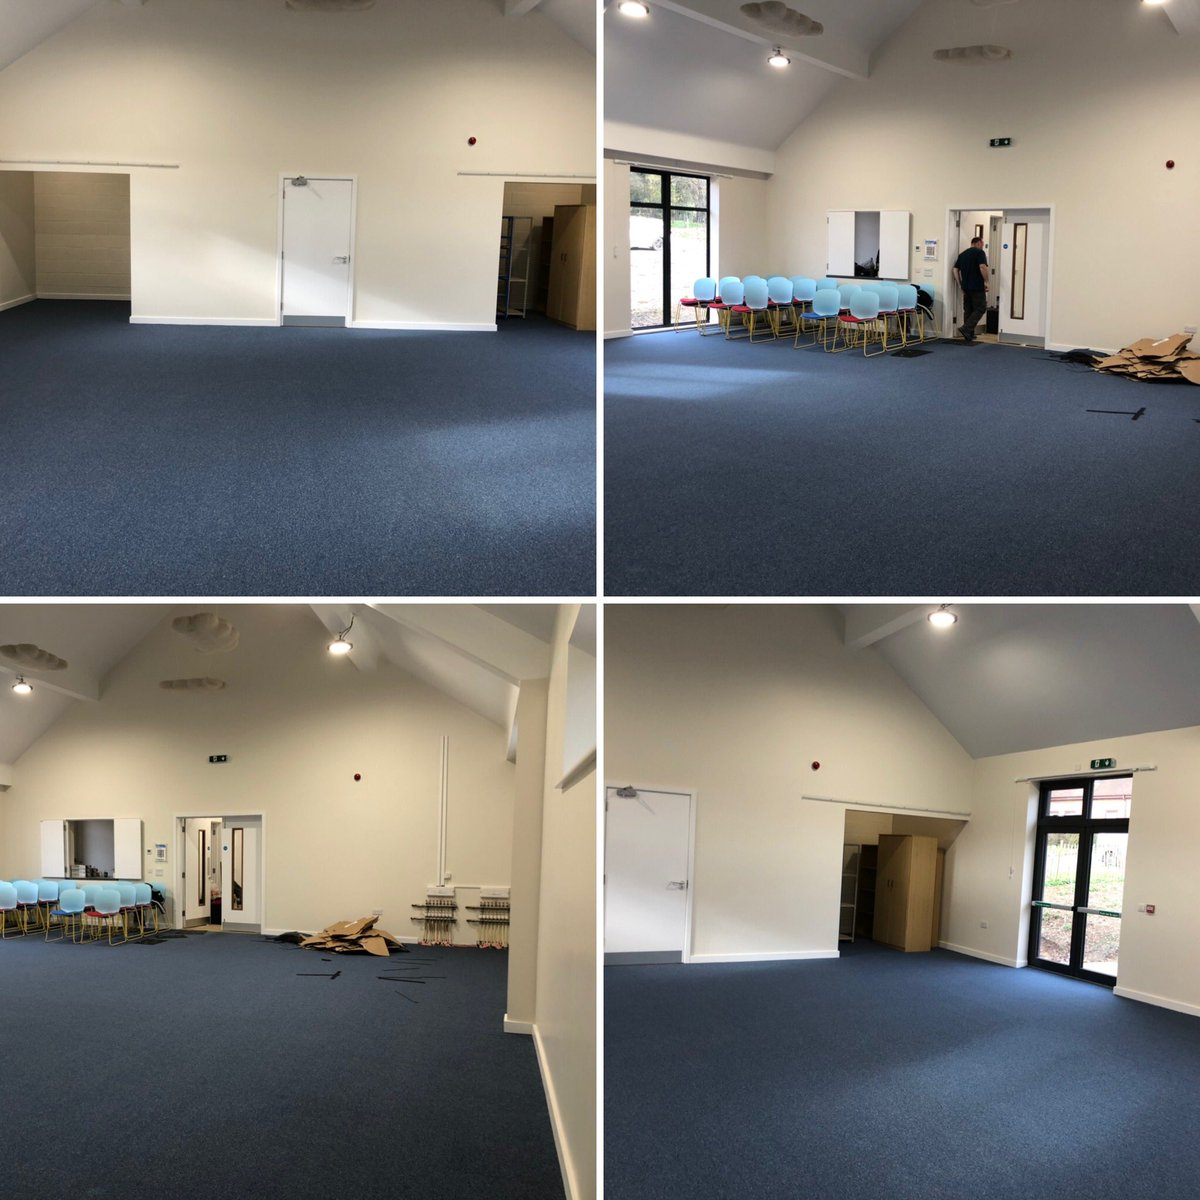 We're very excited to see the floor go down in our new Bandroom today, fingers crossed it won't be long before we can get in and start rehearsals again  #music #rehearsals #brassbands #Amersham